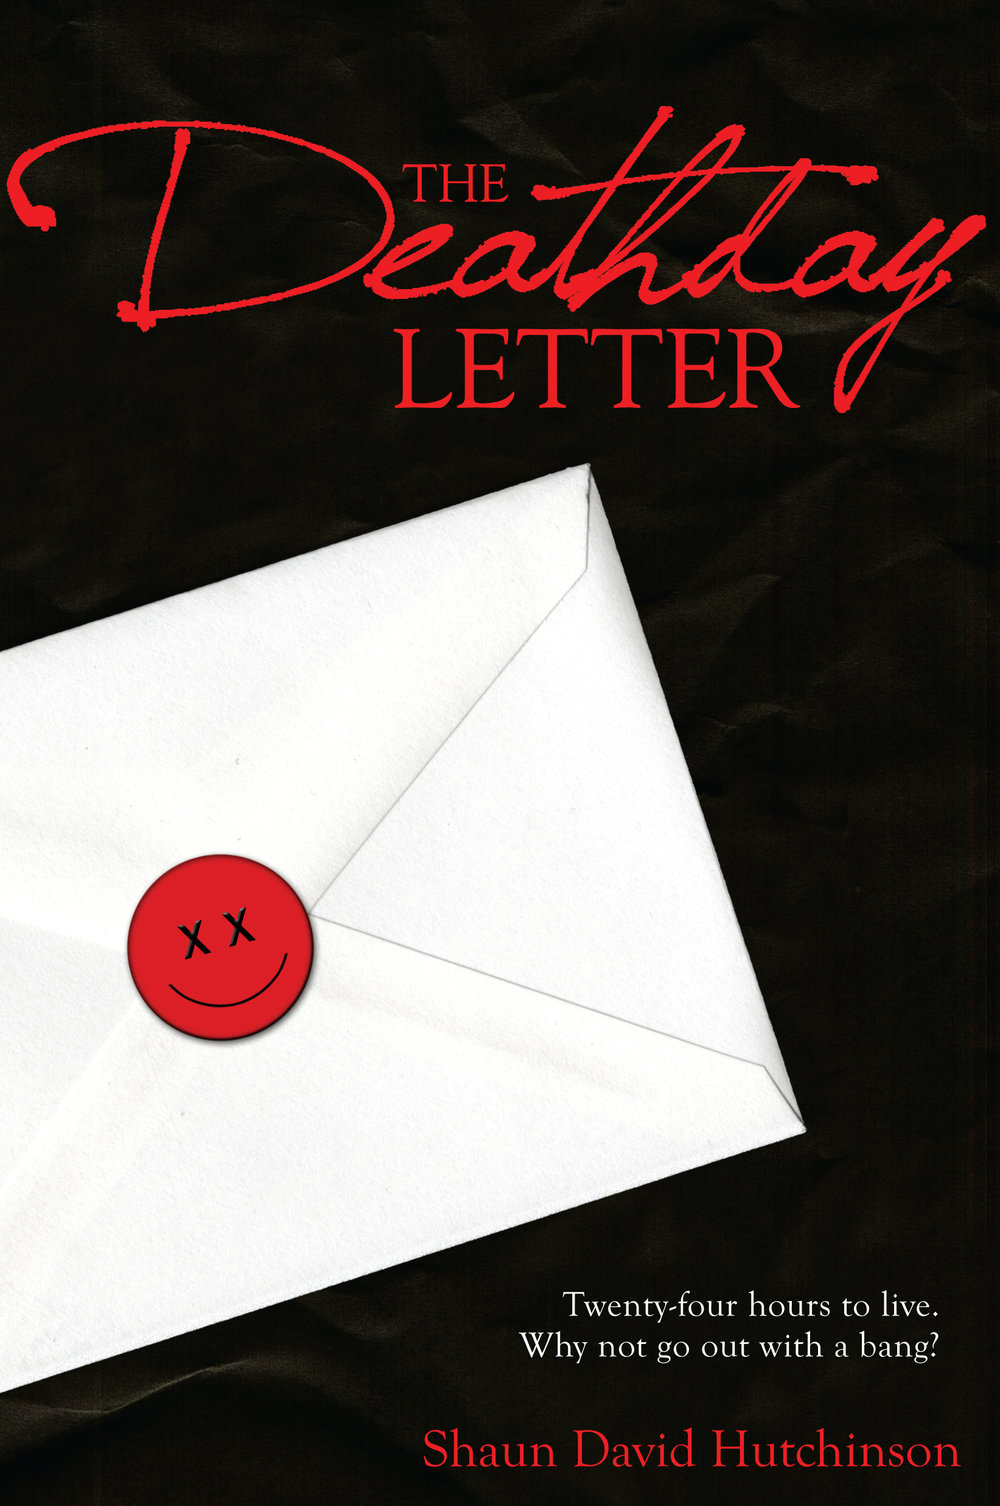 shaun-david-hutchinson-deathday-letter.jpg